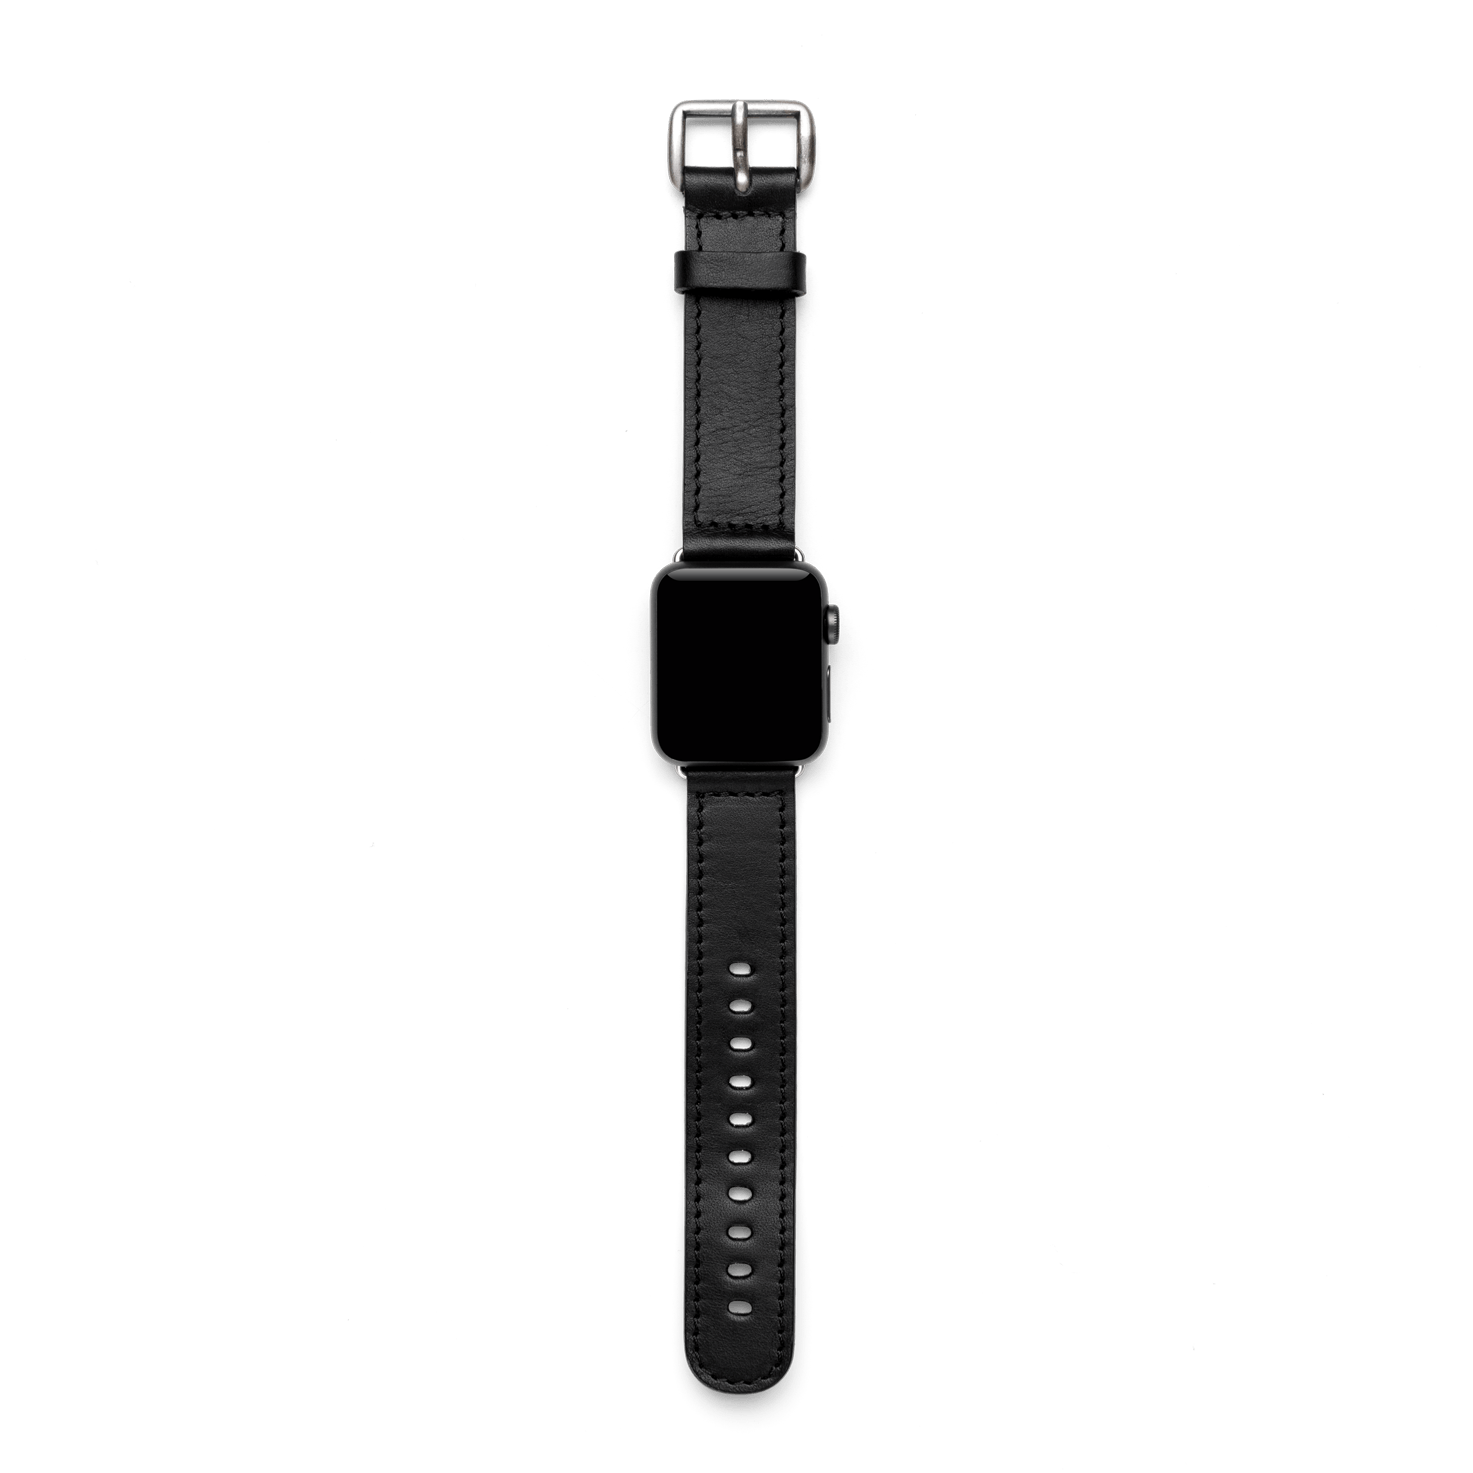 BAND FOR APPLE WATCH